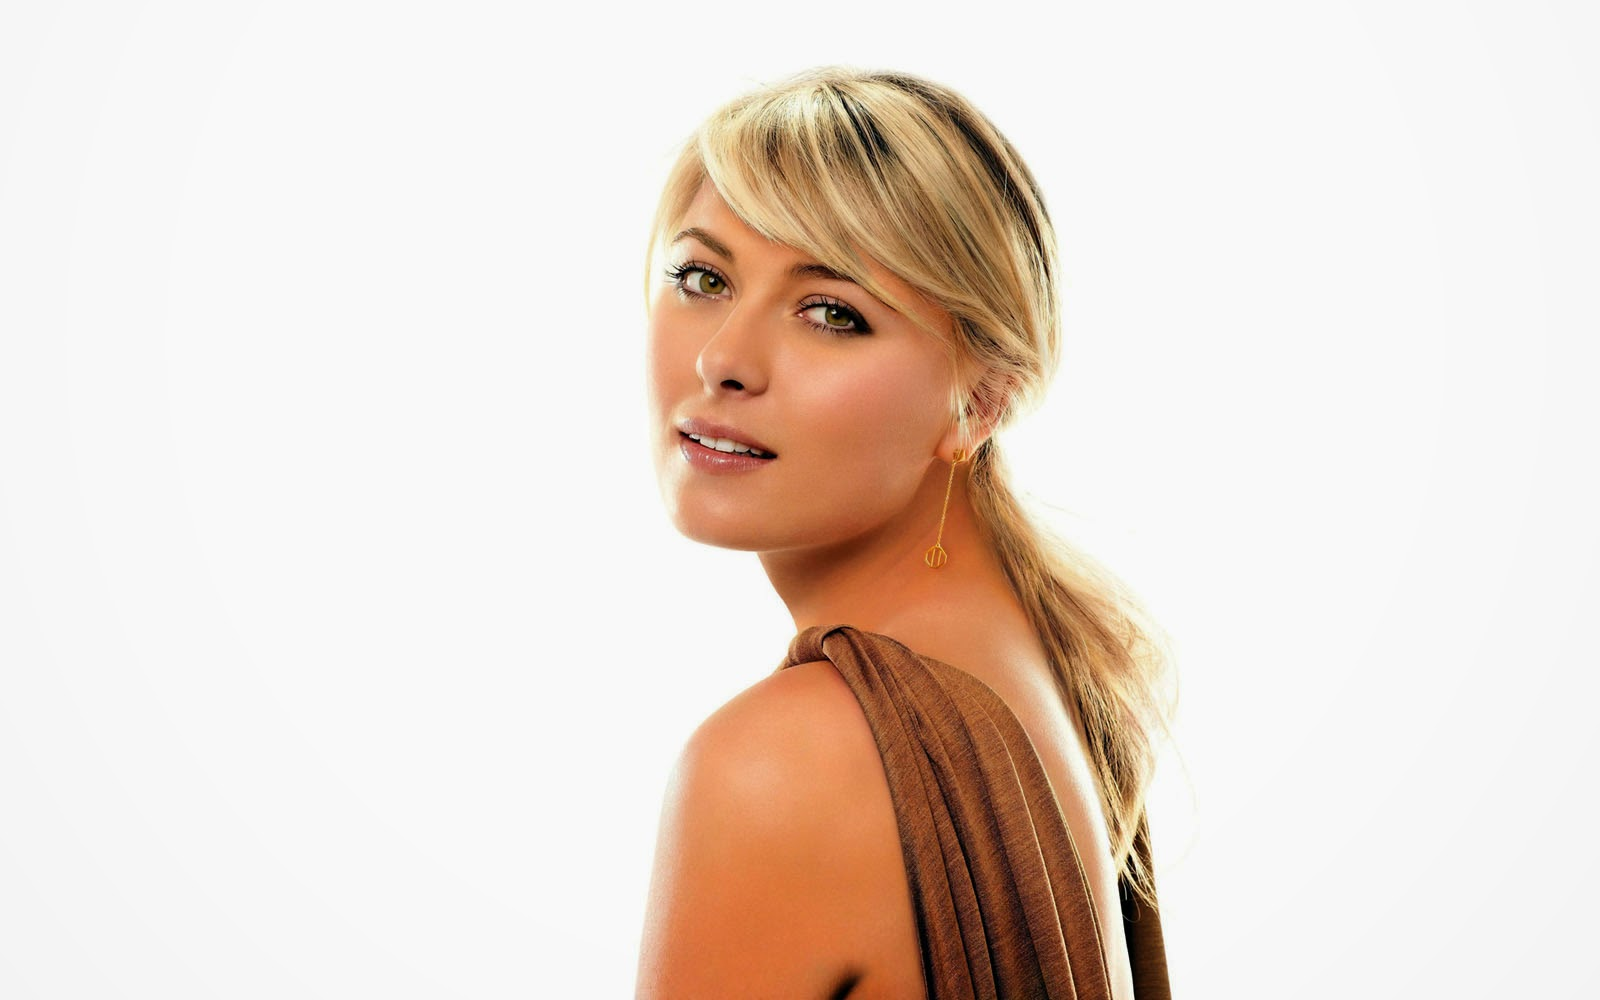 wallpapers Maria Sharapova Wallpapers 1600x1000